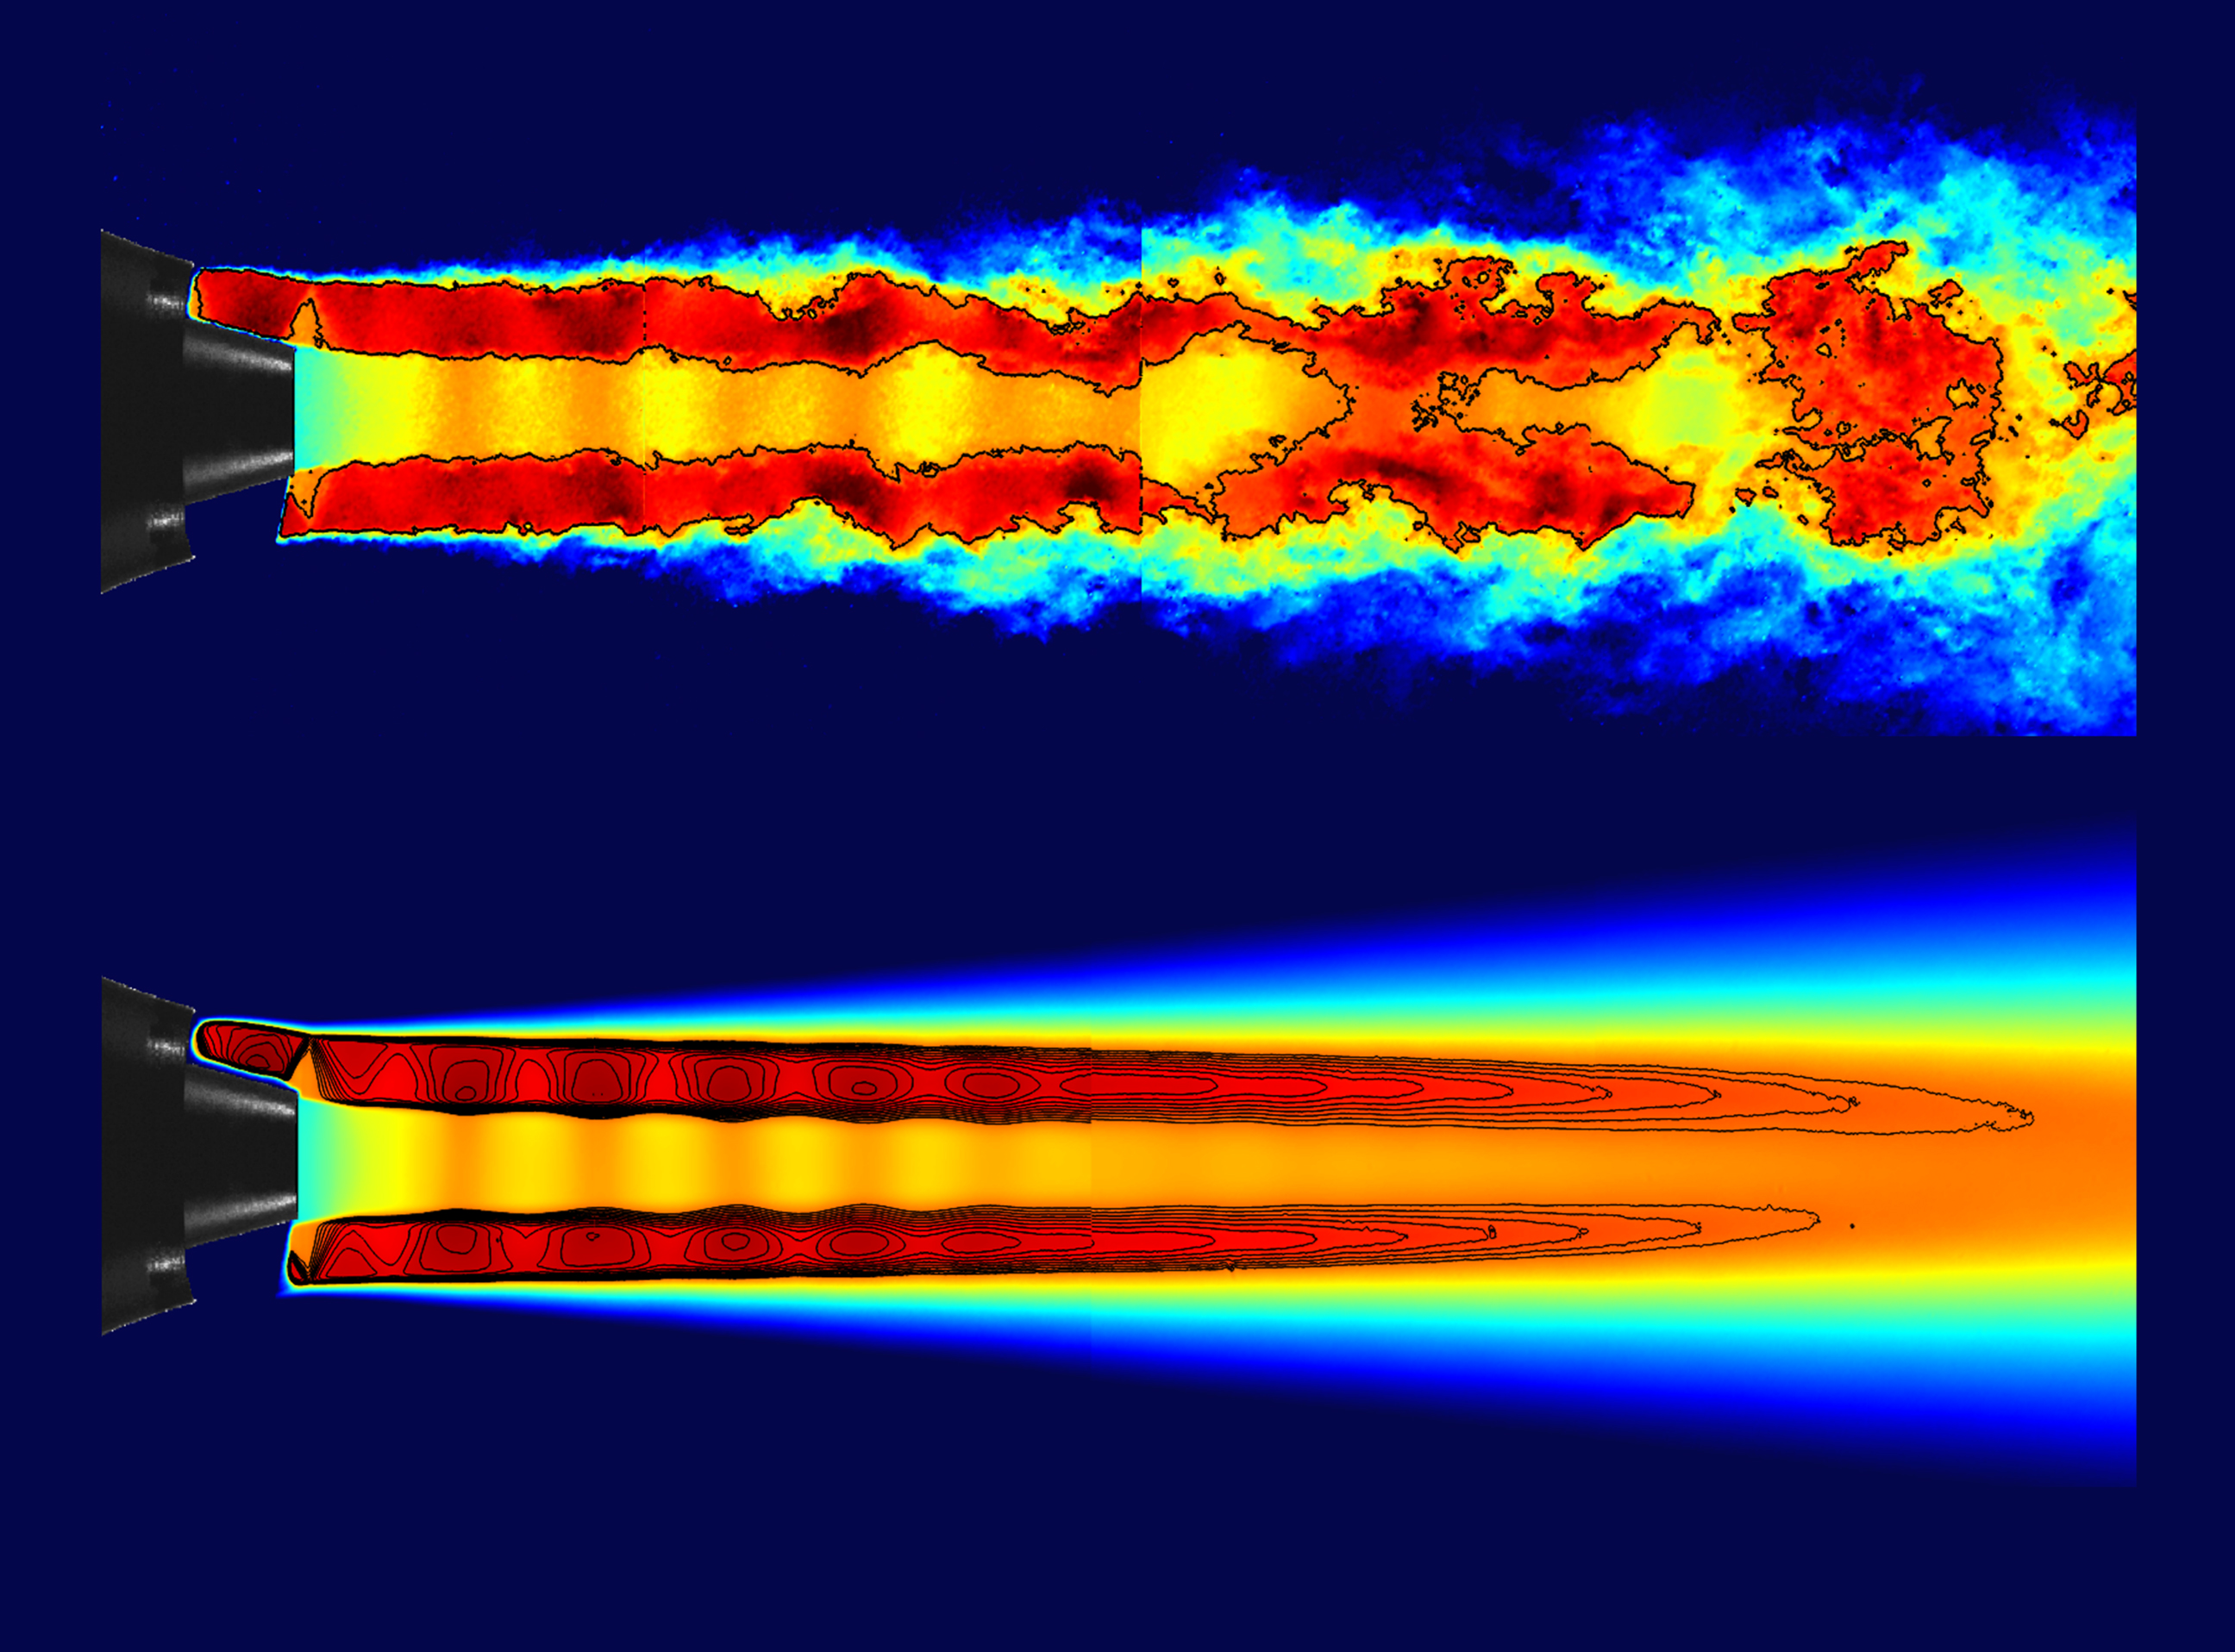 Instantaneous velocity flow field of a subsonic/supersonic coaxial jet obtained through PIV.